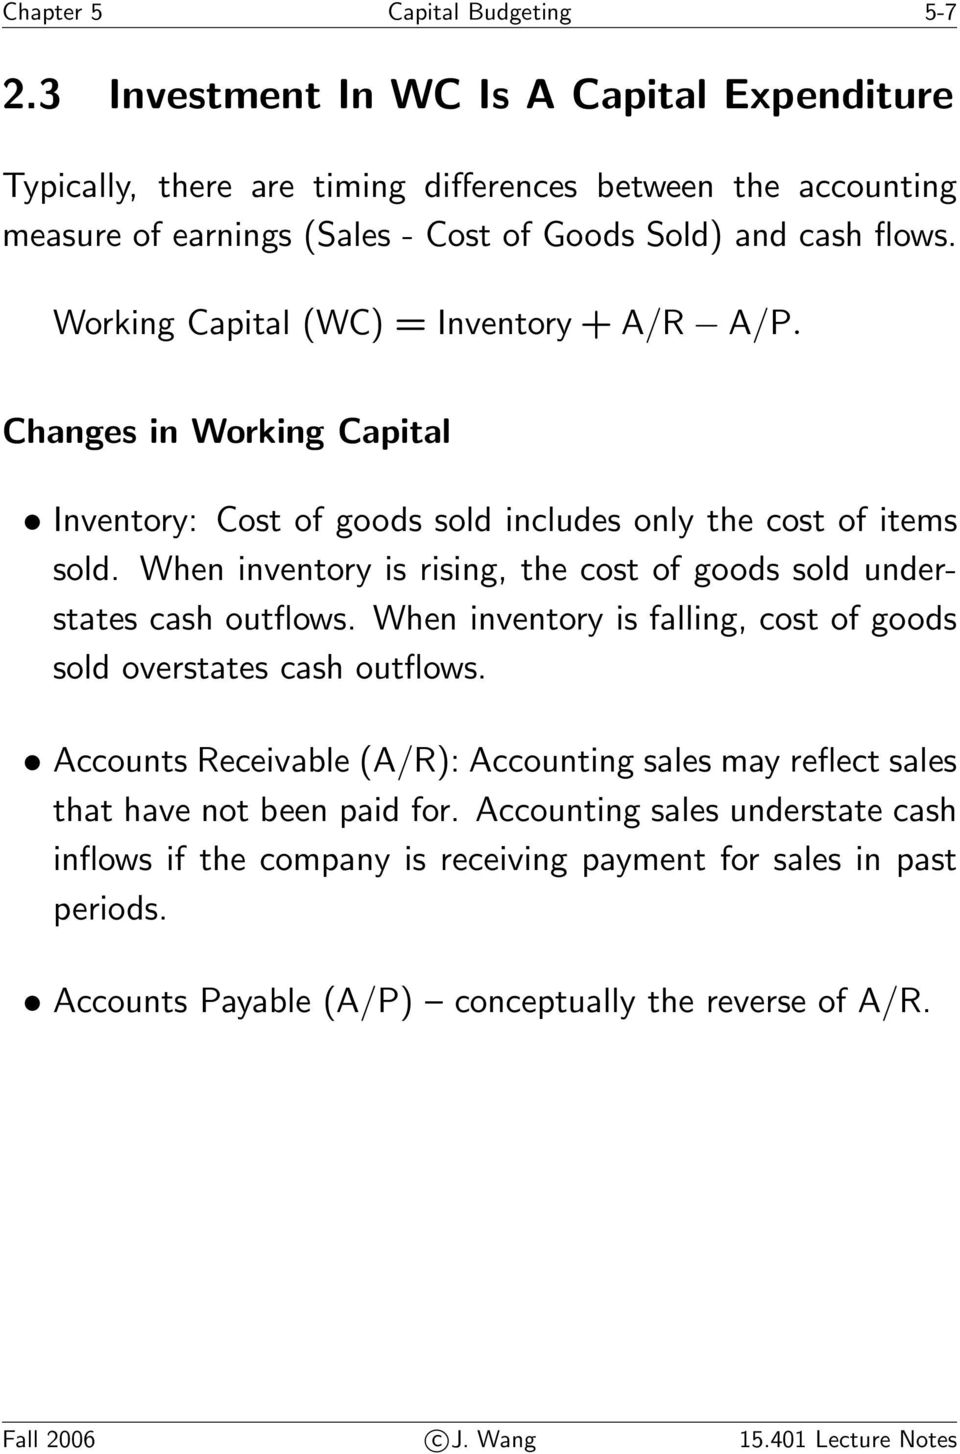 Working Capital (WC) = Inventory + A/R A/P. Changes in Working Capital Inventory: Cost of goods sold includes only the cost of items sold.